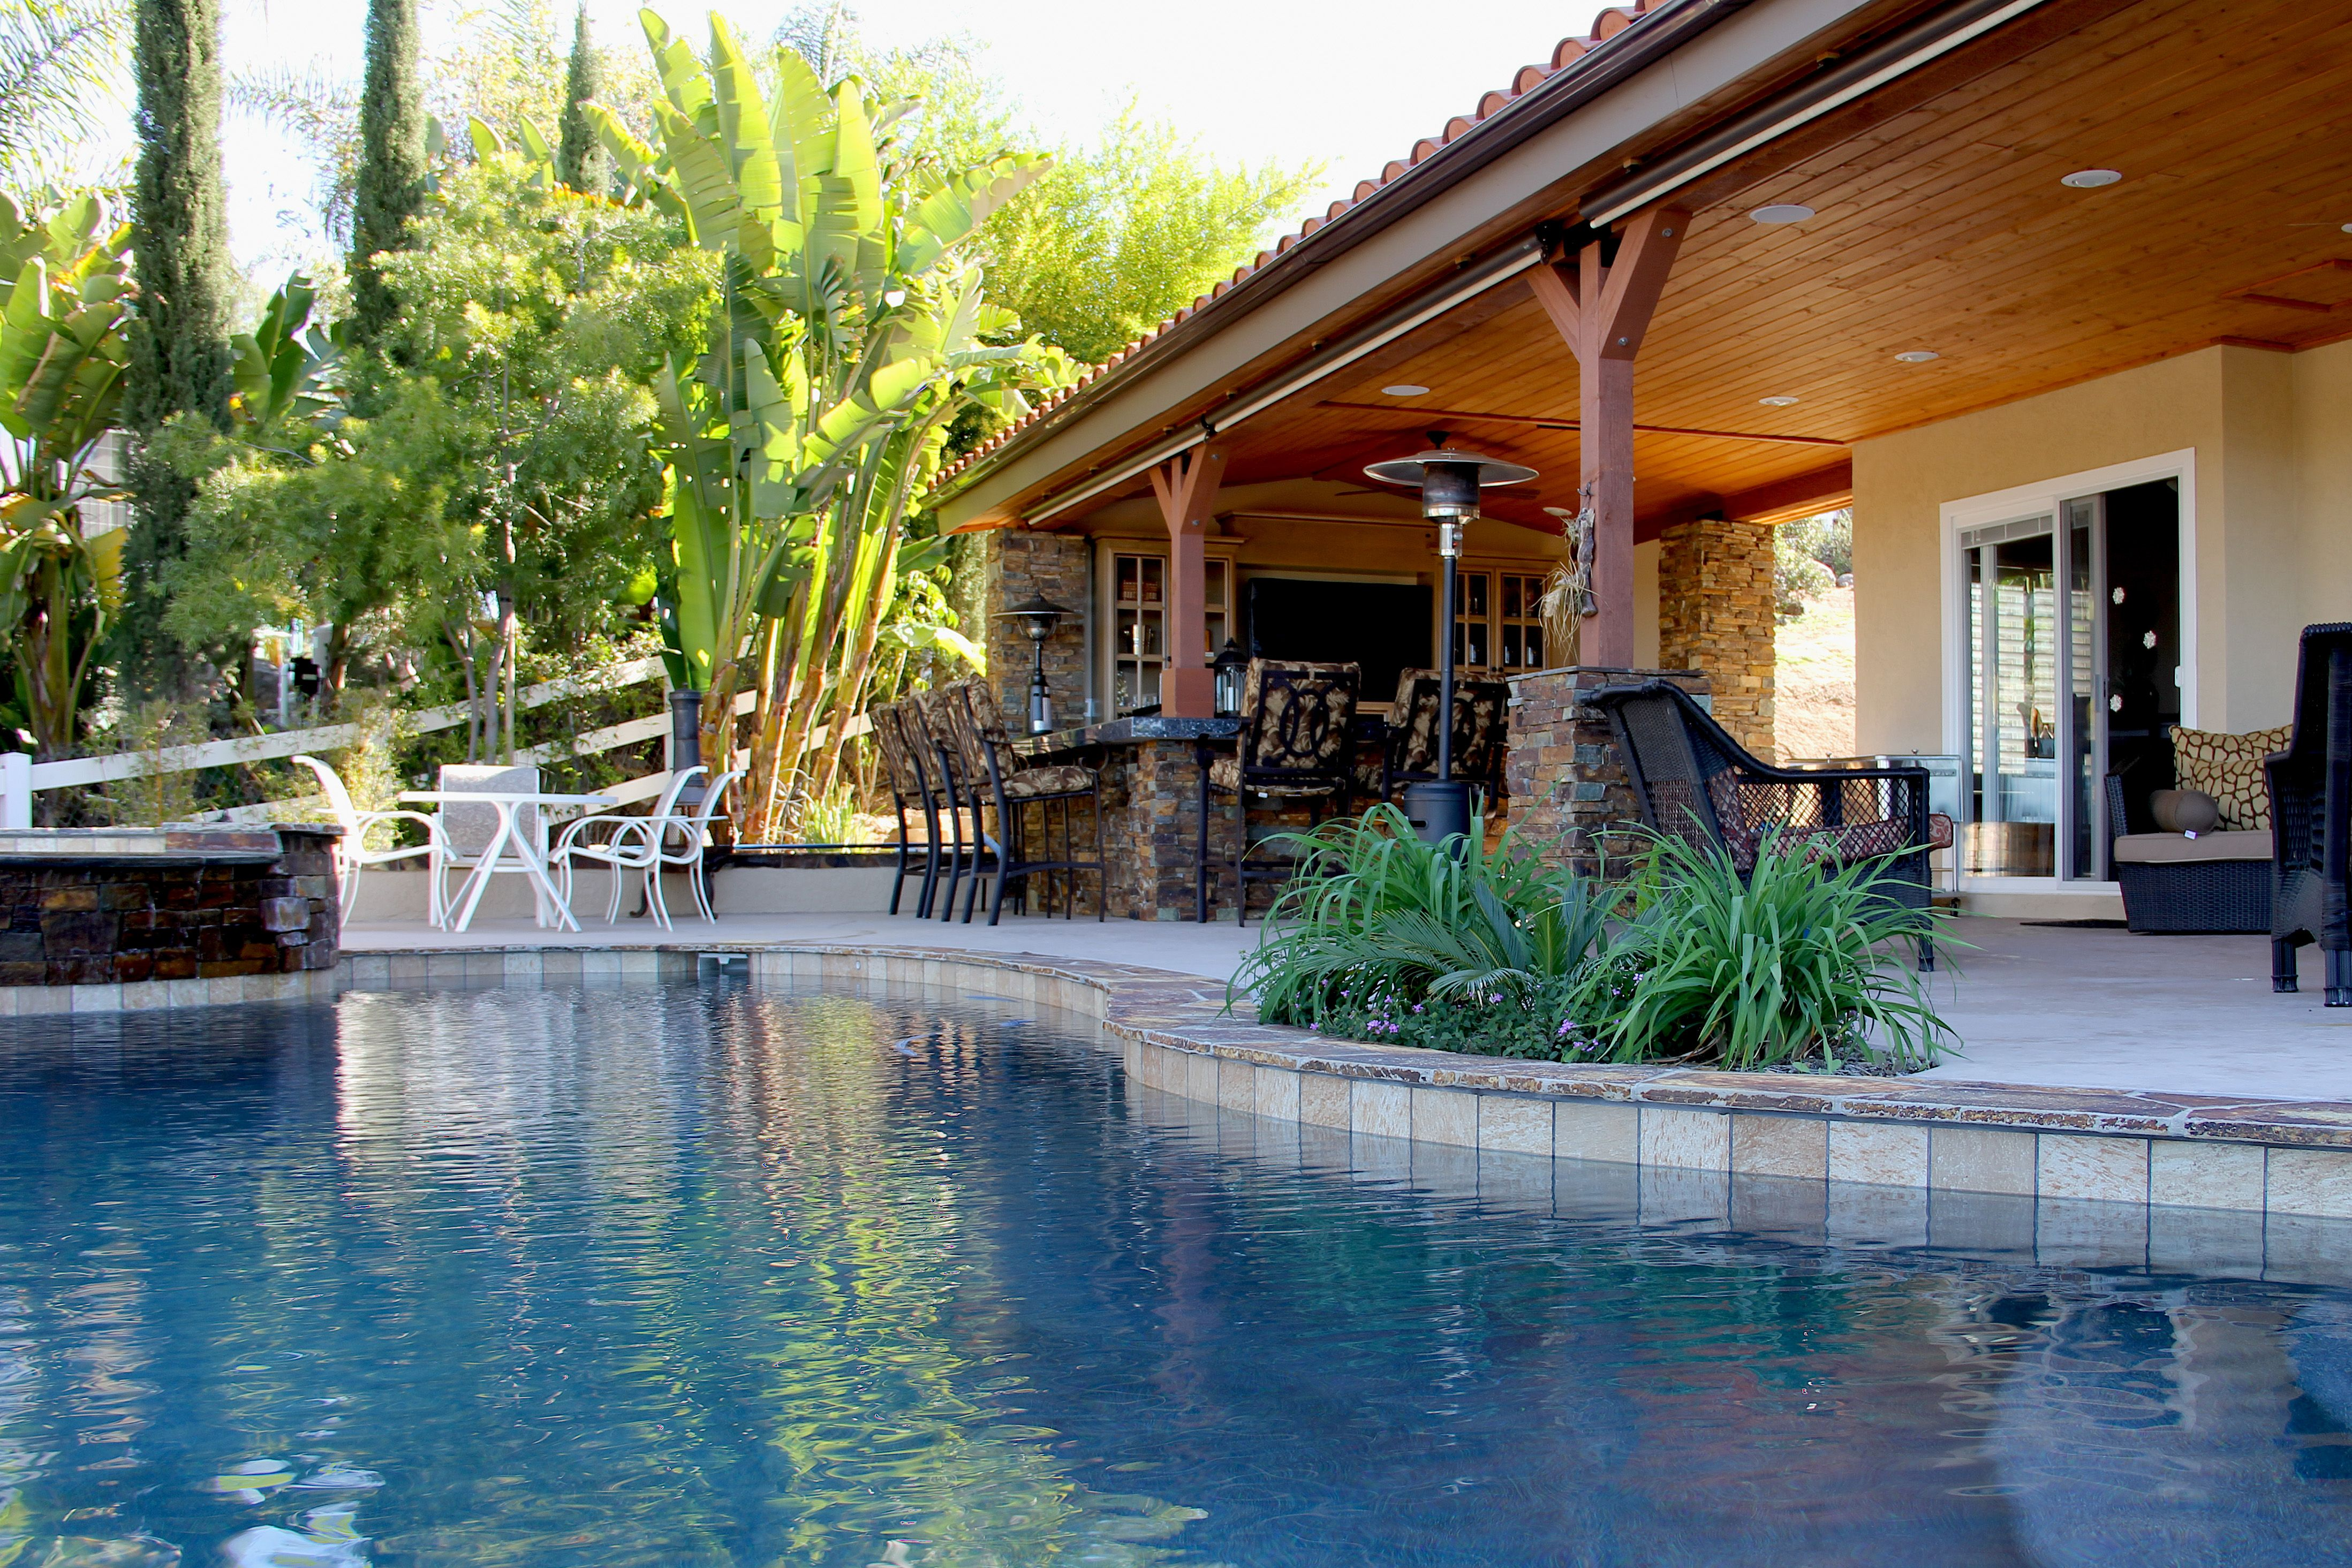 Swimming Pool Outdoor Kitchen Outdoor Living Room Full Circle